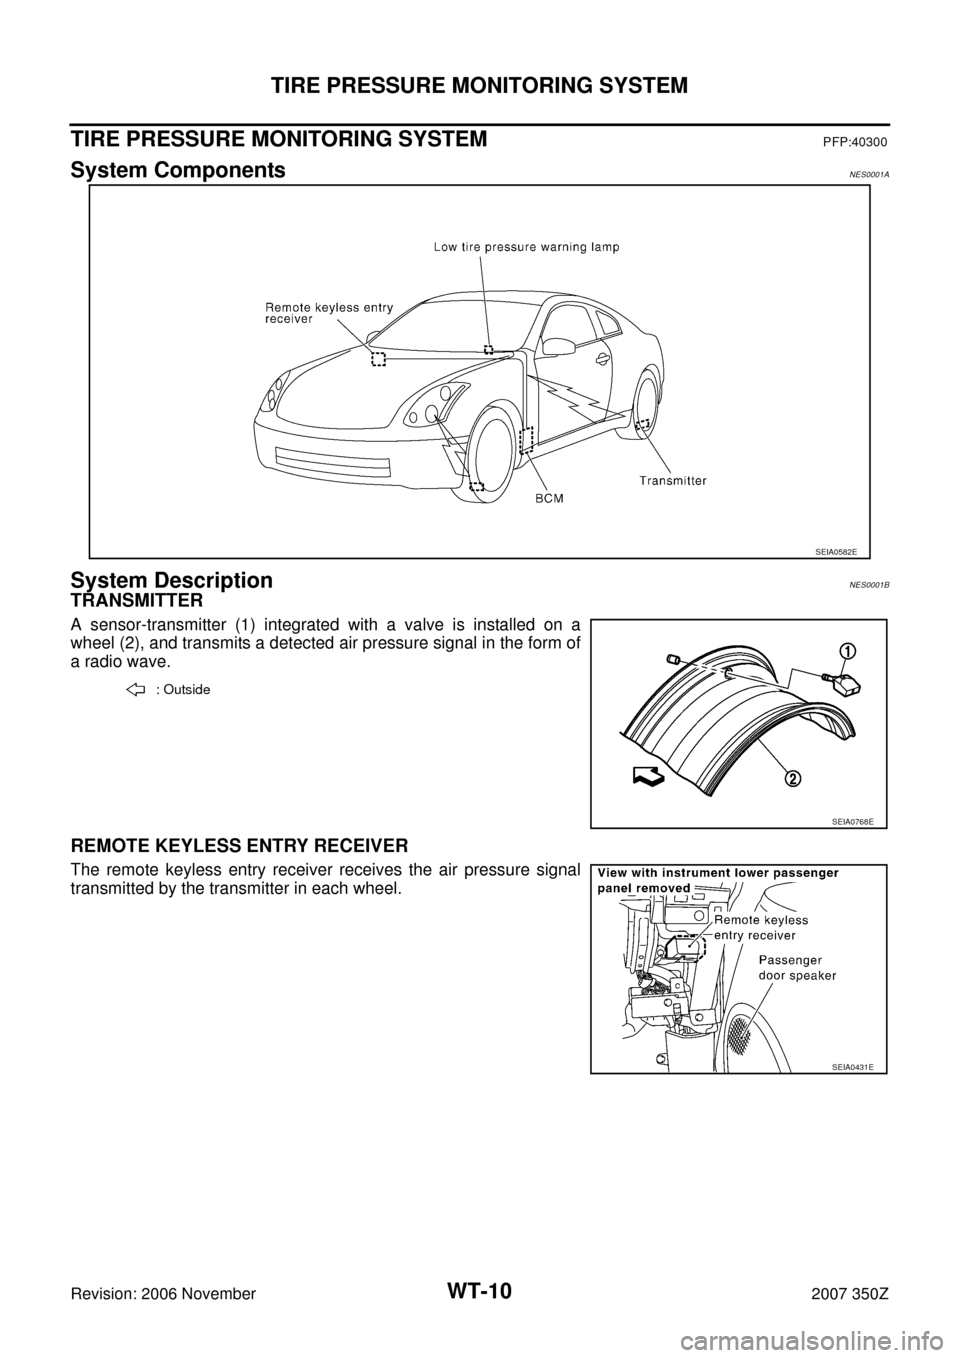 NISSAN 350Z 2007 Z33 Road Wheels And Tires Workshop Manual, Page 10